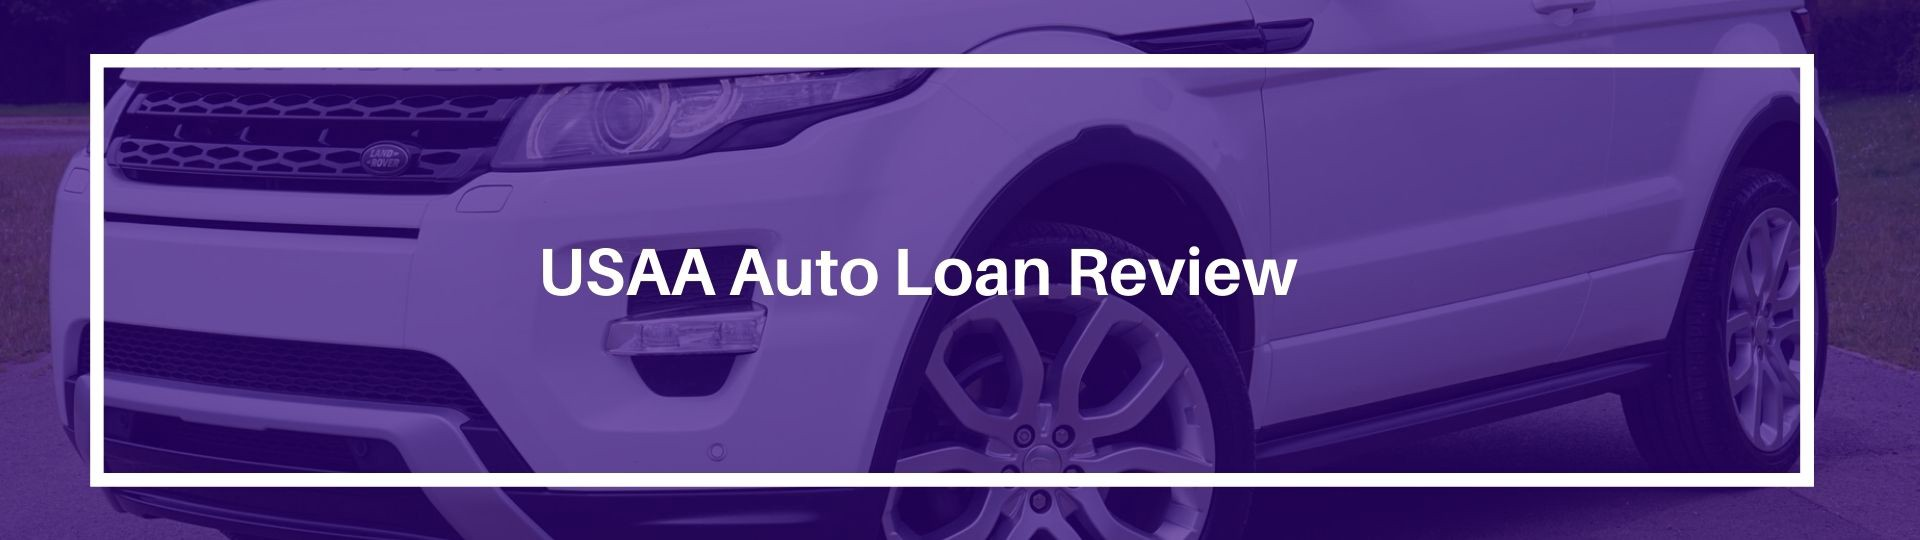 Usaa Car Loan >> Usaa Auto Loan Review Rates Refinance Pre Approval And More